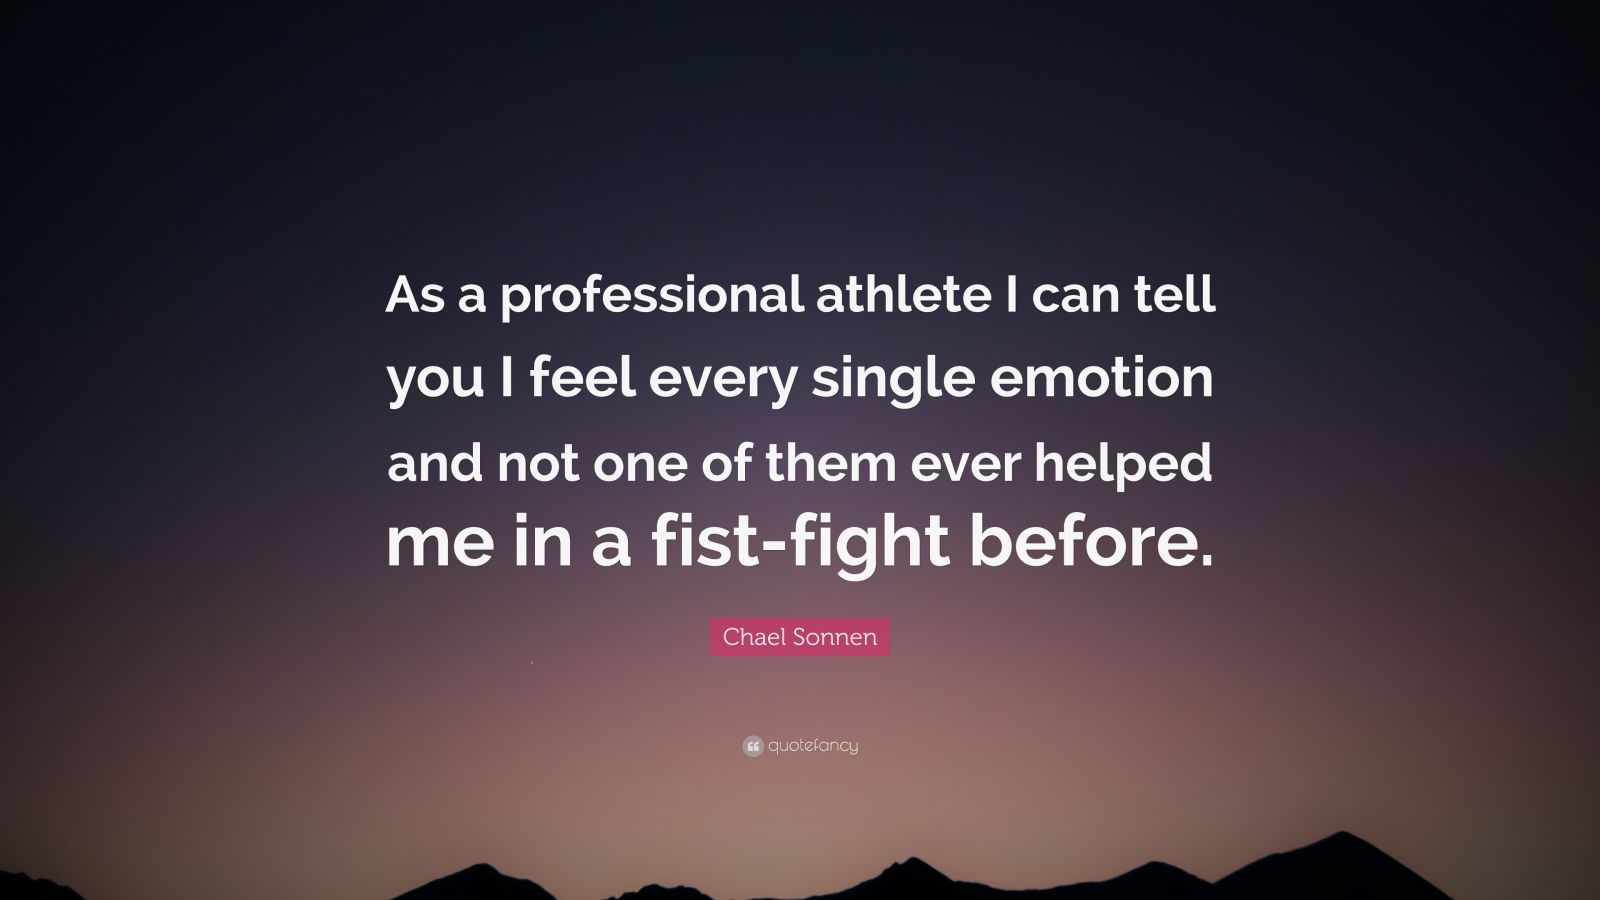 """Chael Sonnen Quote: """"As a professional athlete I can tell you I feel every single emotion and not one of them ever helped me in a fist-fight before."""""""